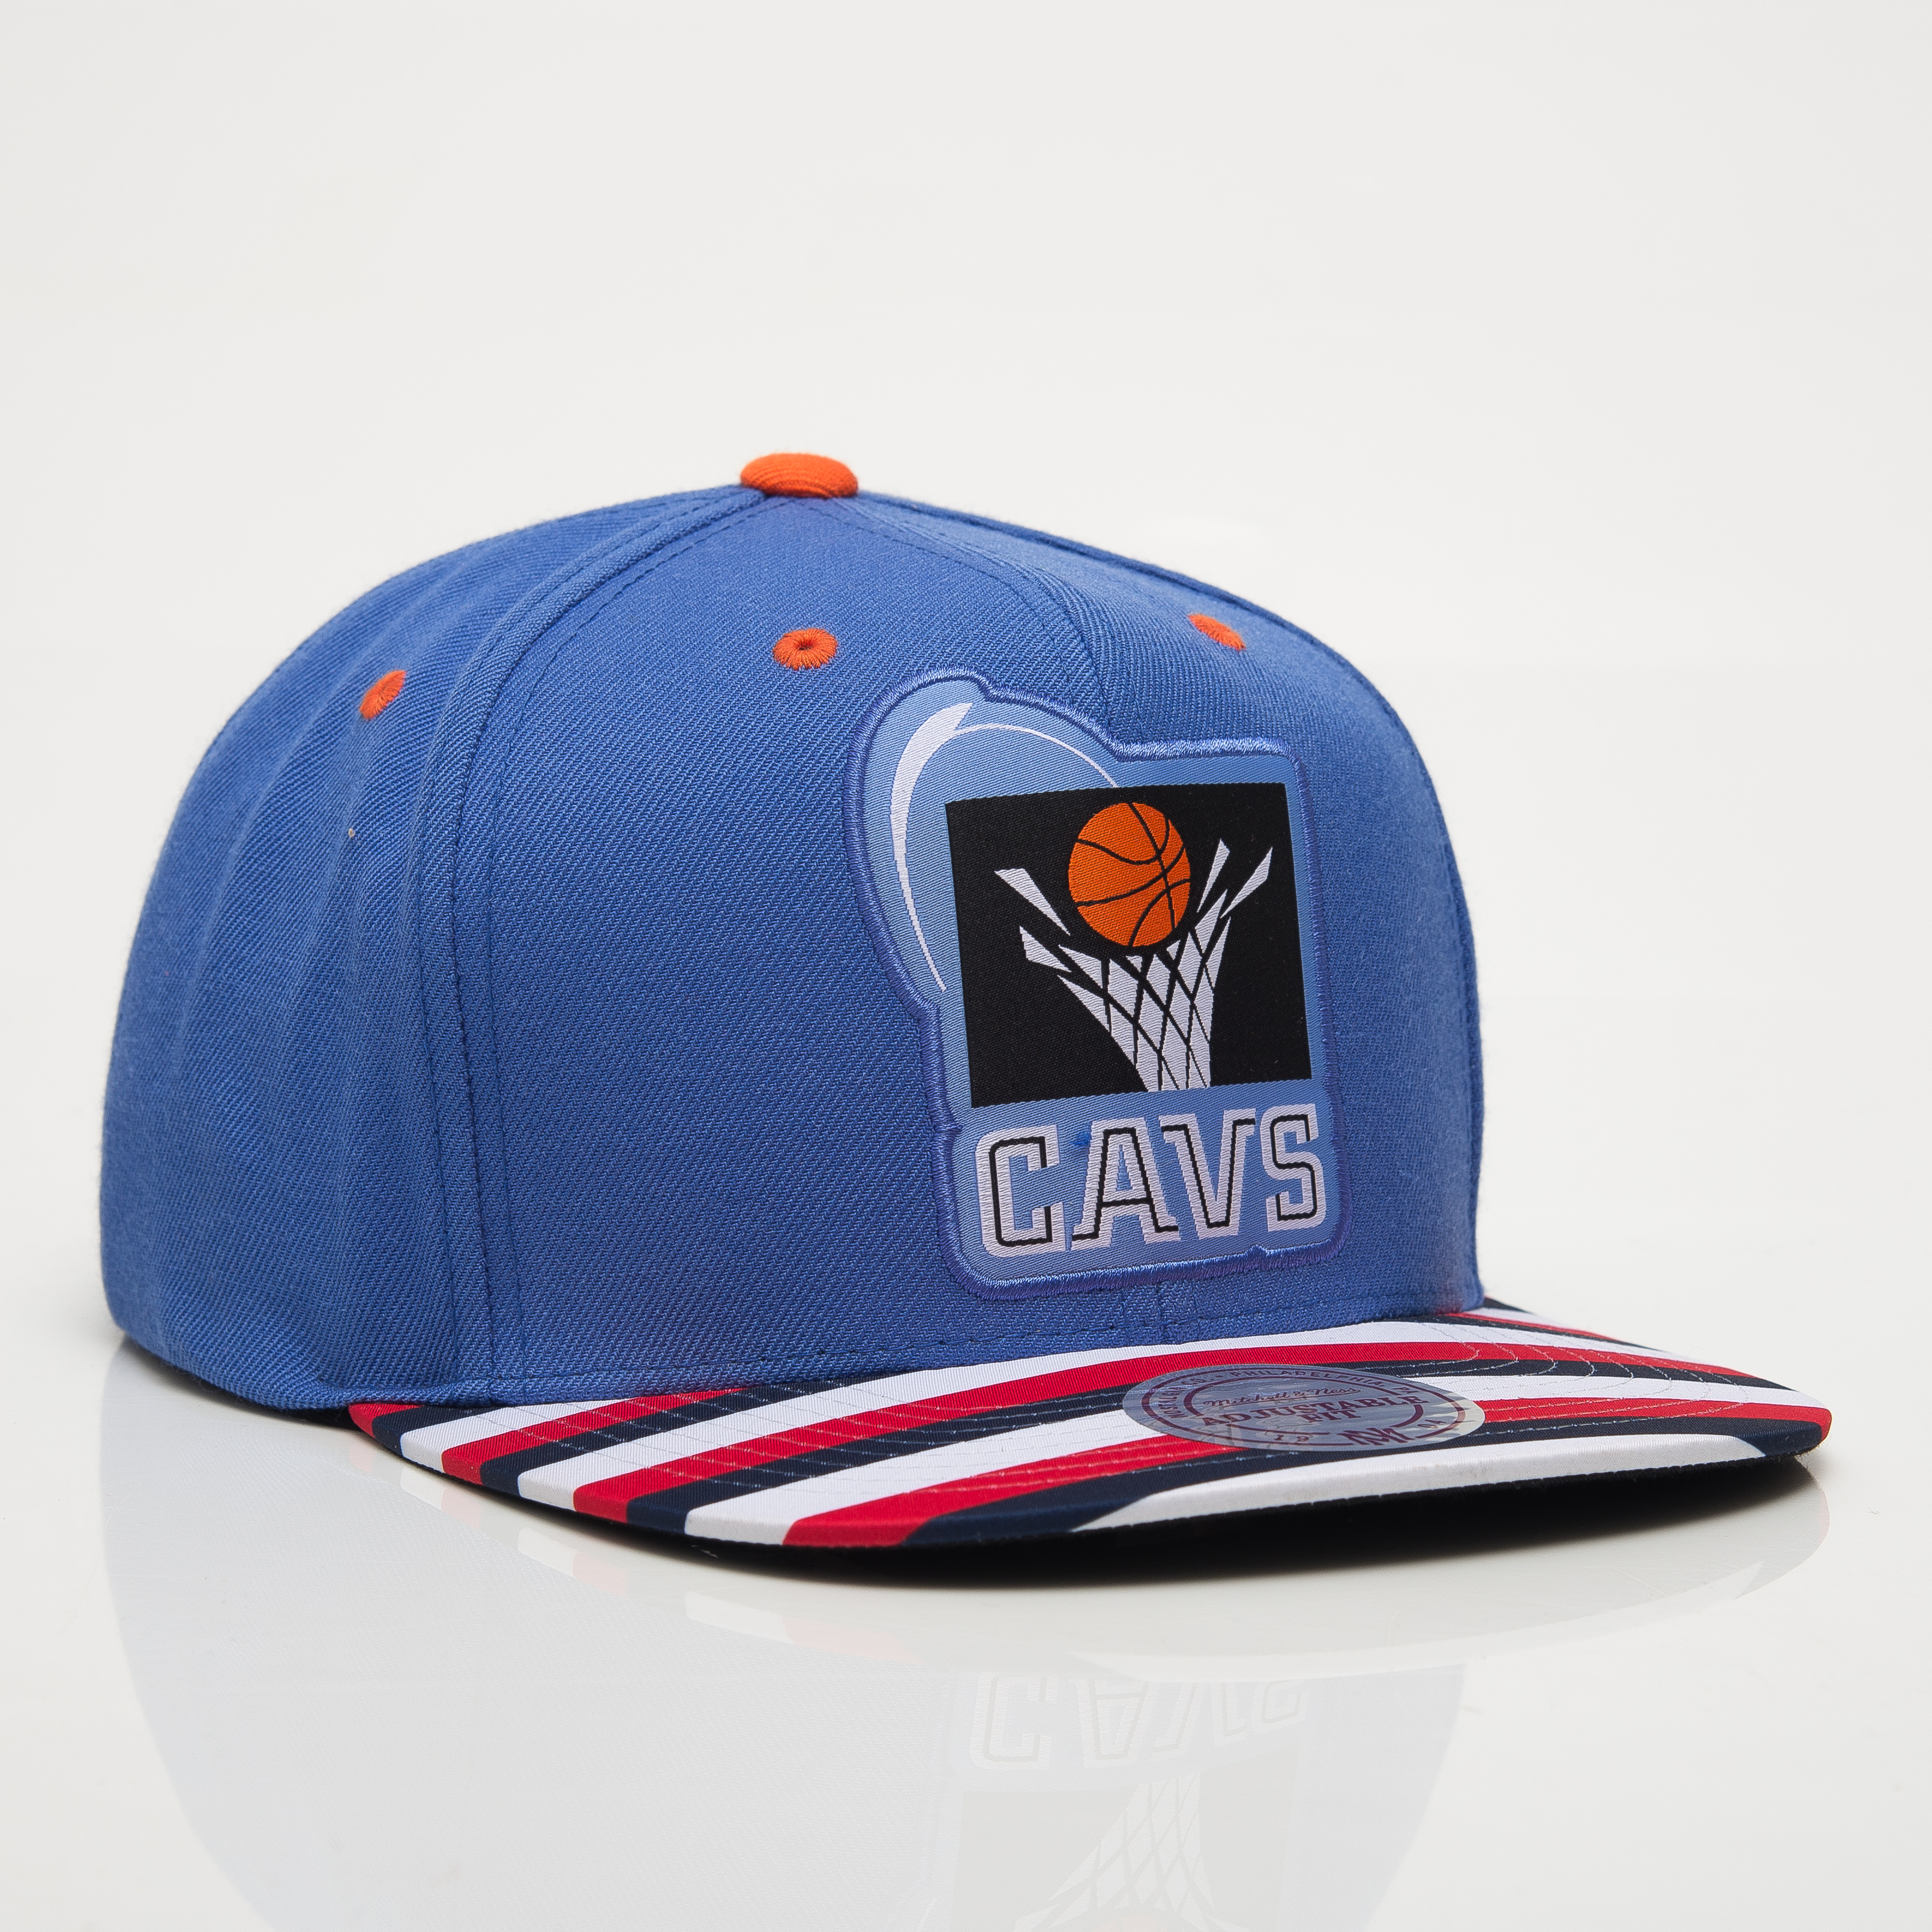 huge discount 71a2f 0f570 Mitchell & Ness NBA Cleveland Cavaliers Diamond Snapback Cap ...